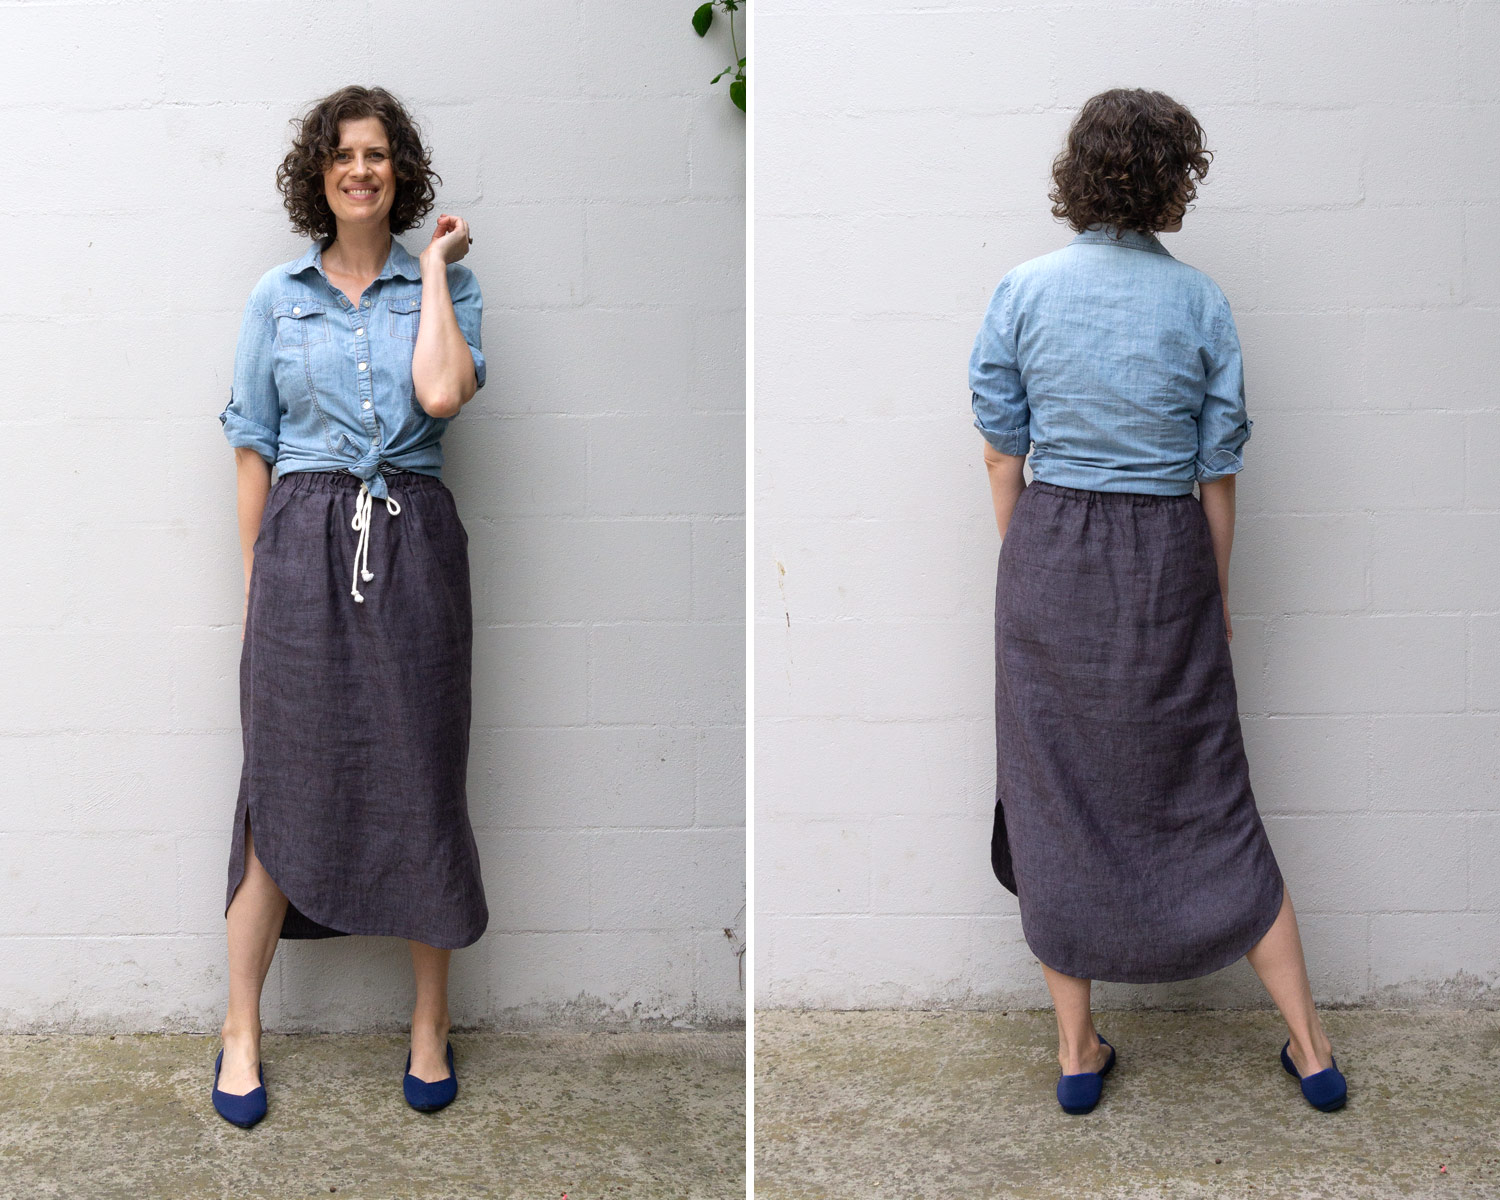 How to Style the Lela Skirt with a Button Down